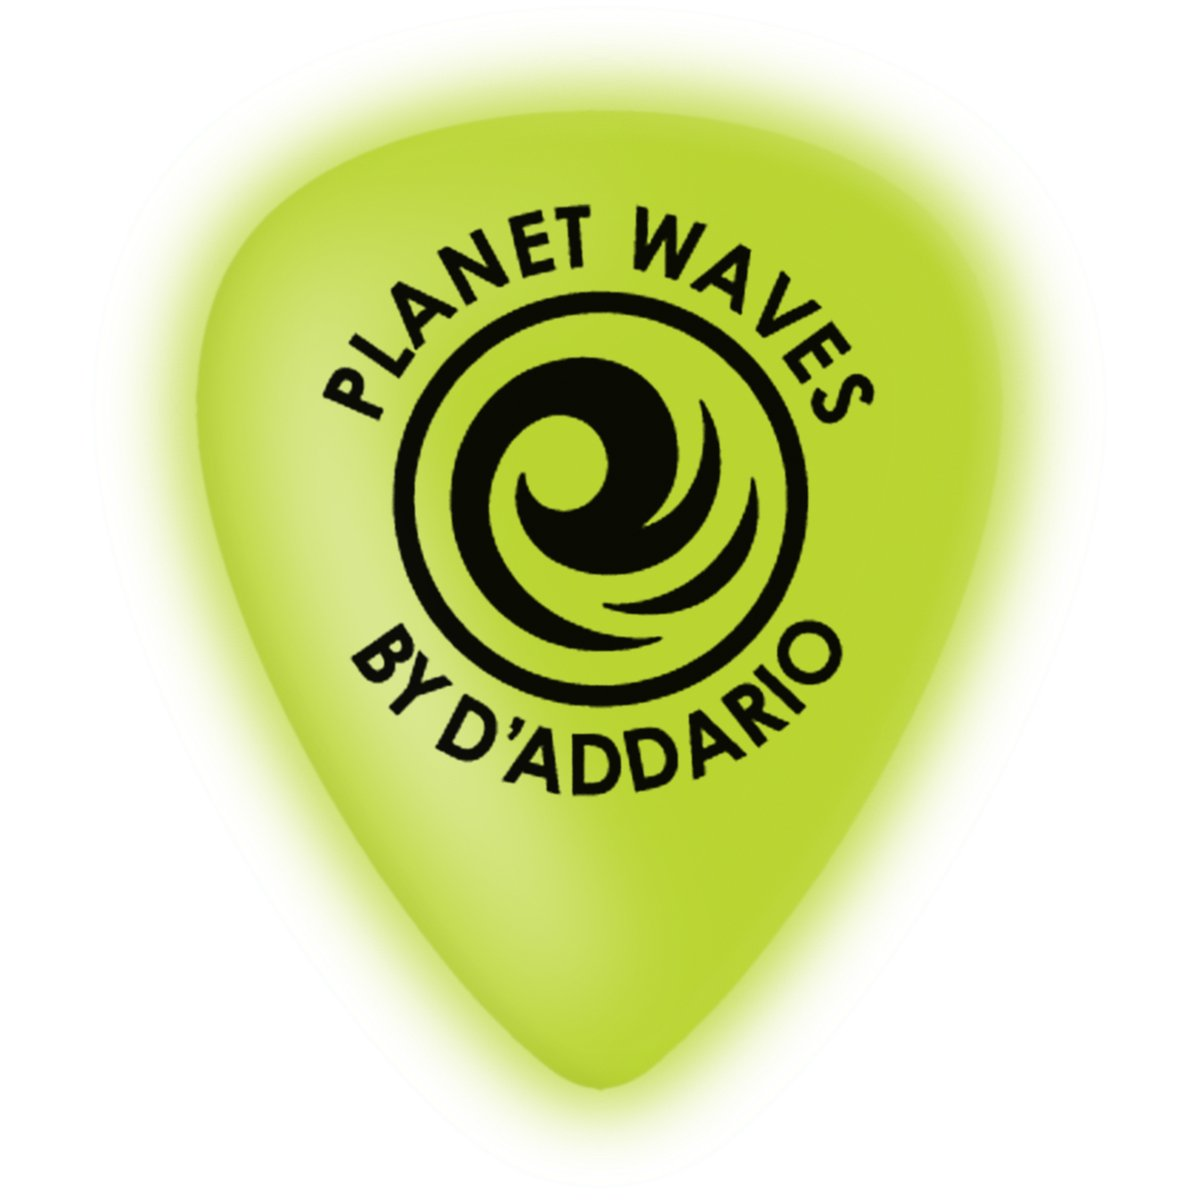 Planet Waves Cellu-Glow Guitar Picks, Extra-Heavy, 10 pack planet waves 1dpr6 100 duralin picks heavy